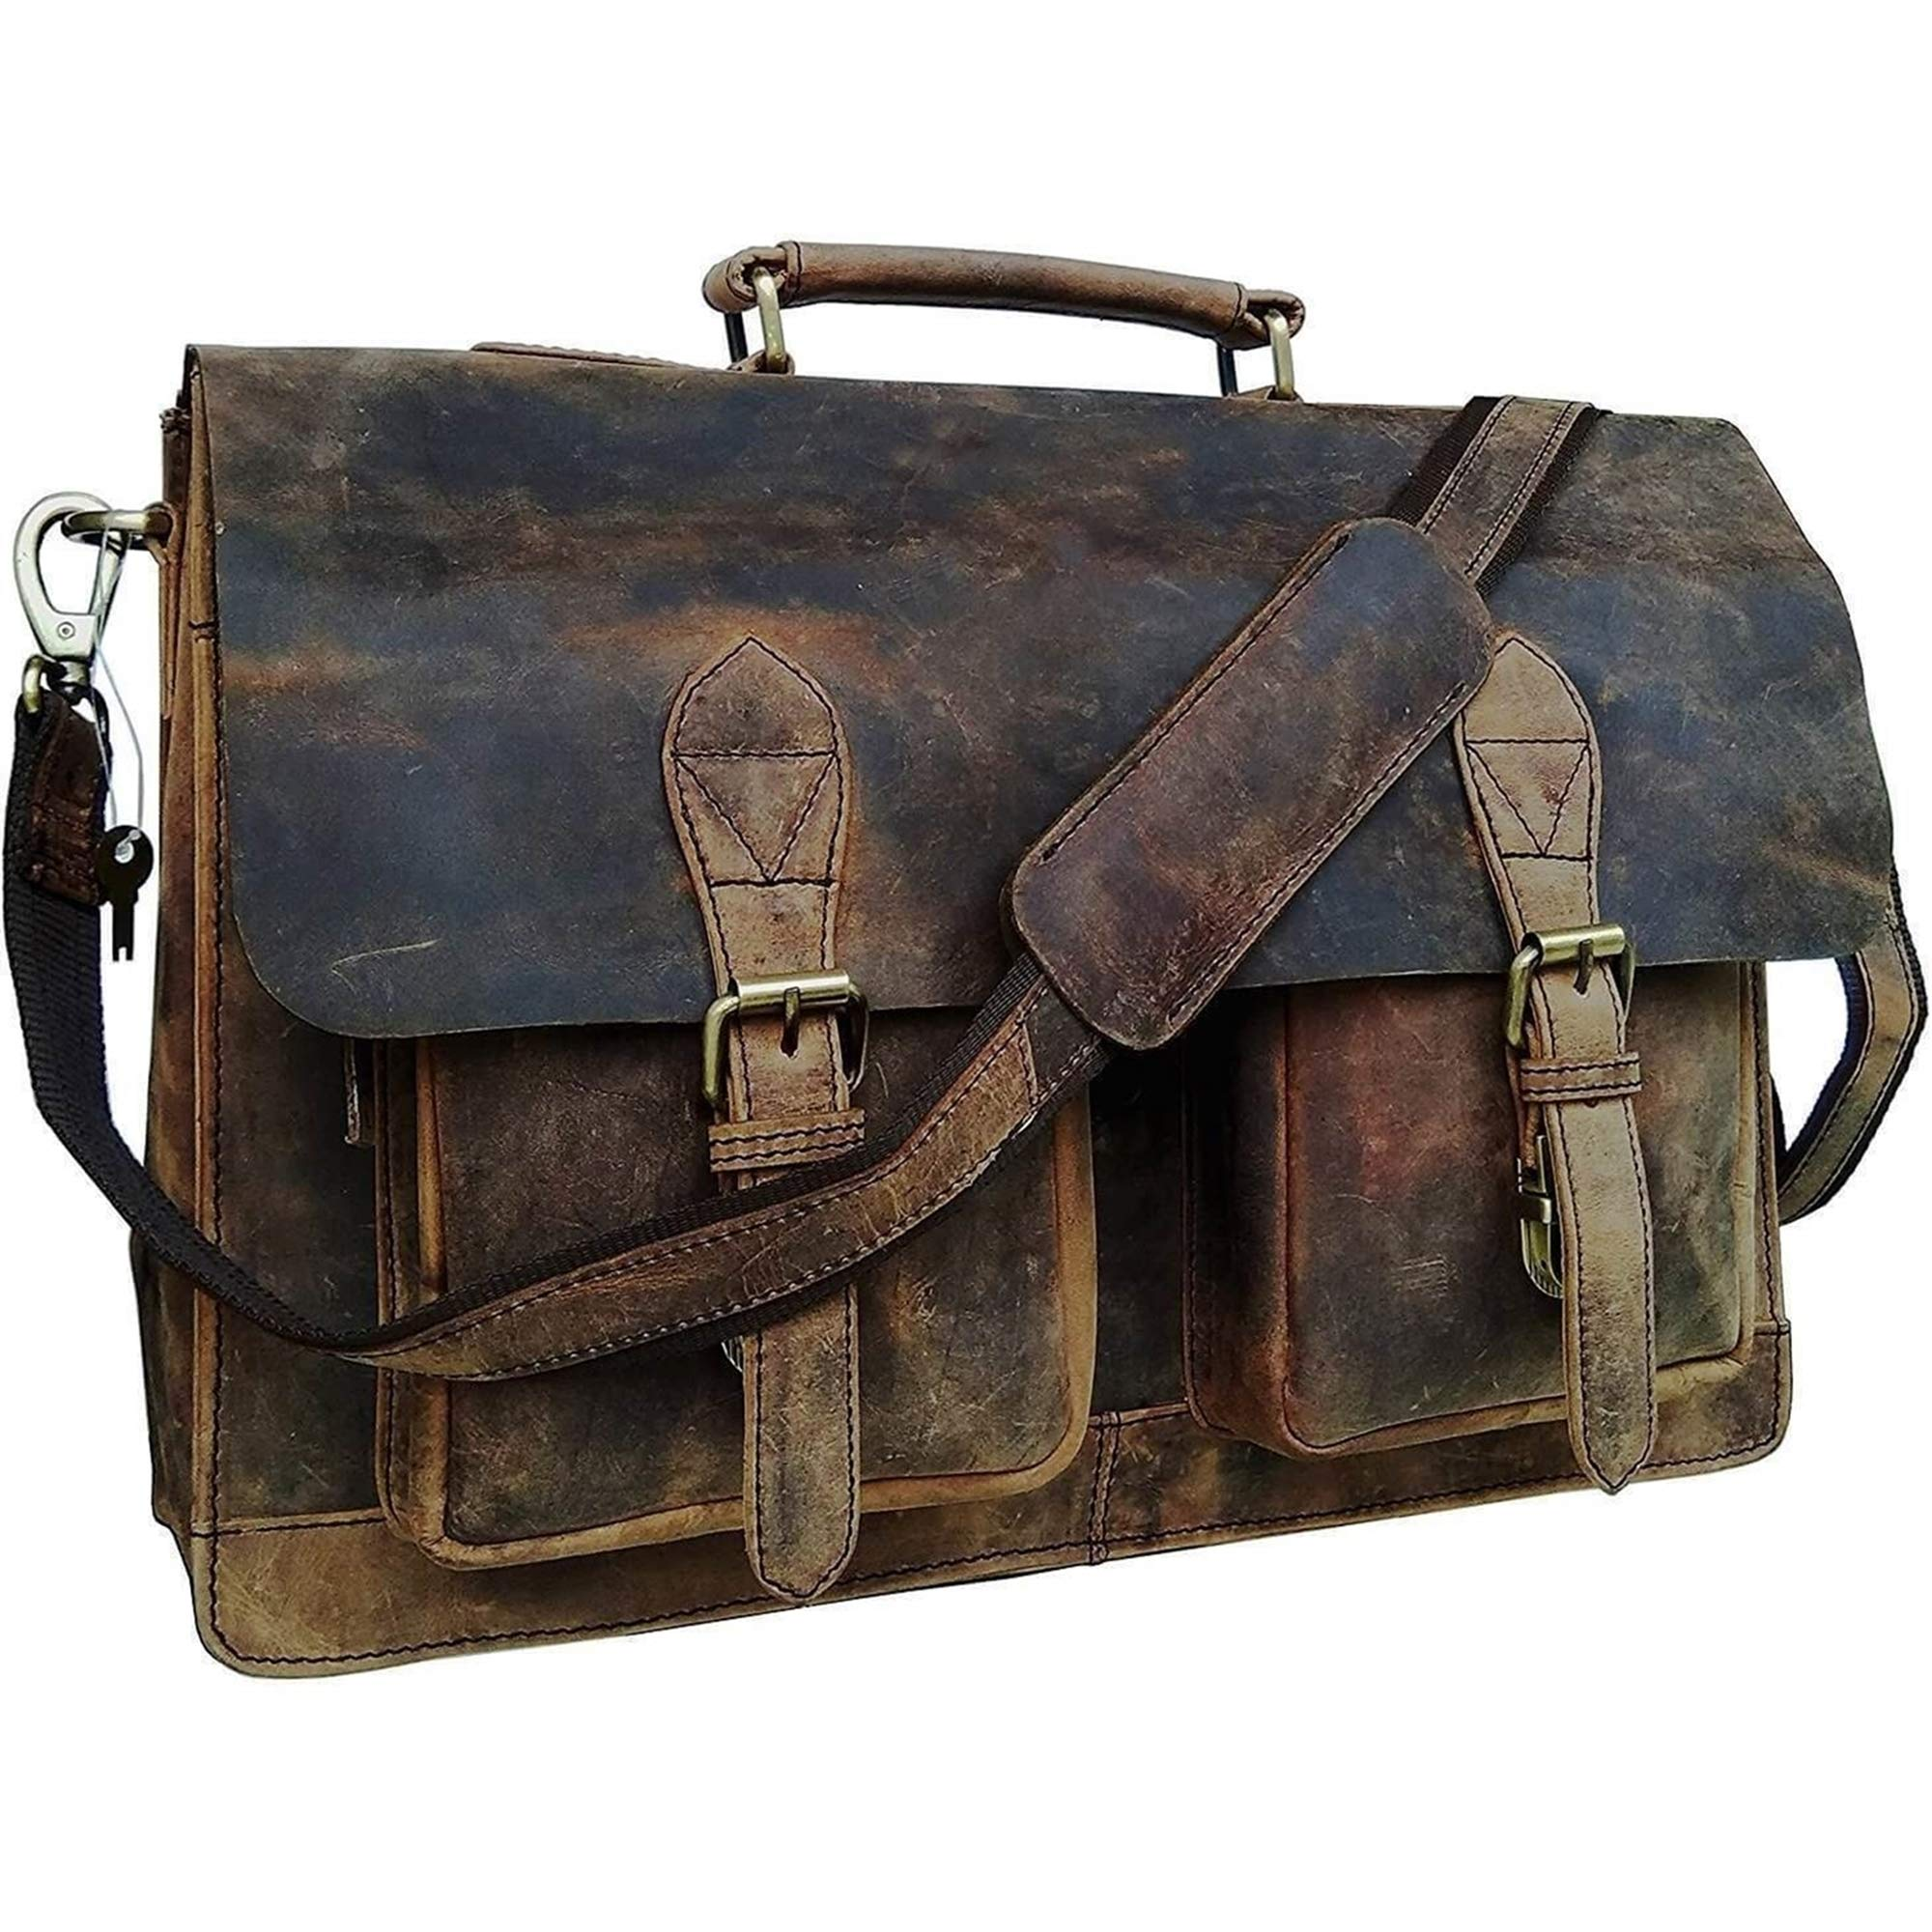 Retro Buffalo Hunter Leather Laptop Messenger Bag Office Briefcase College Bag by Urban Hide (18'') by Urban Hide (Image #1)